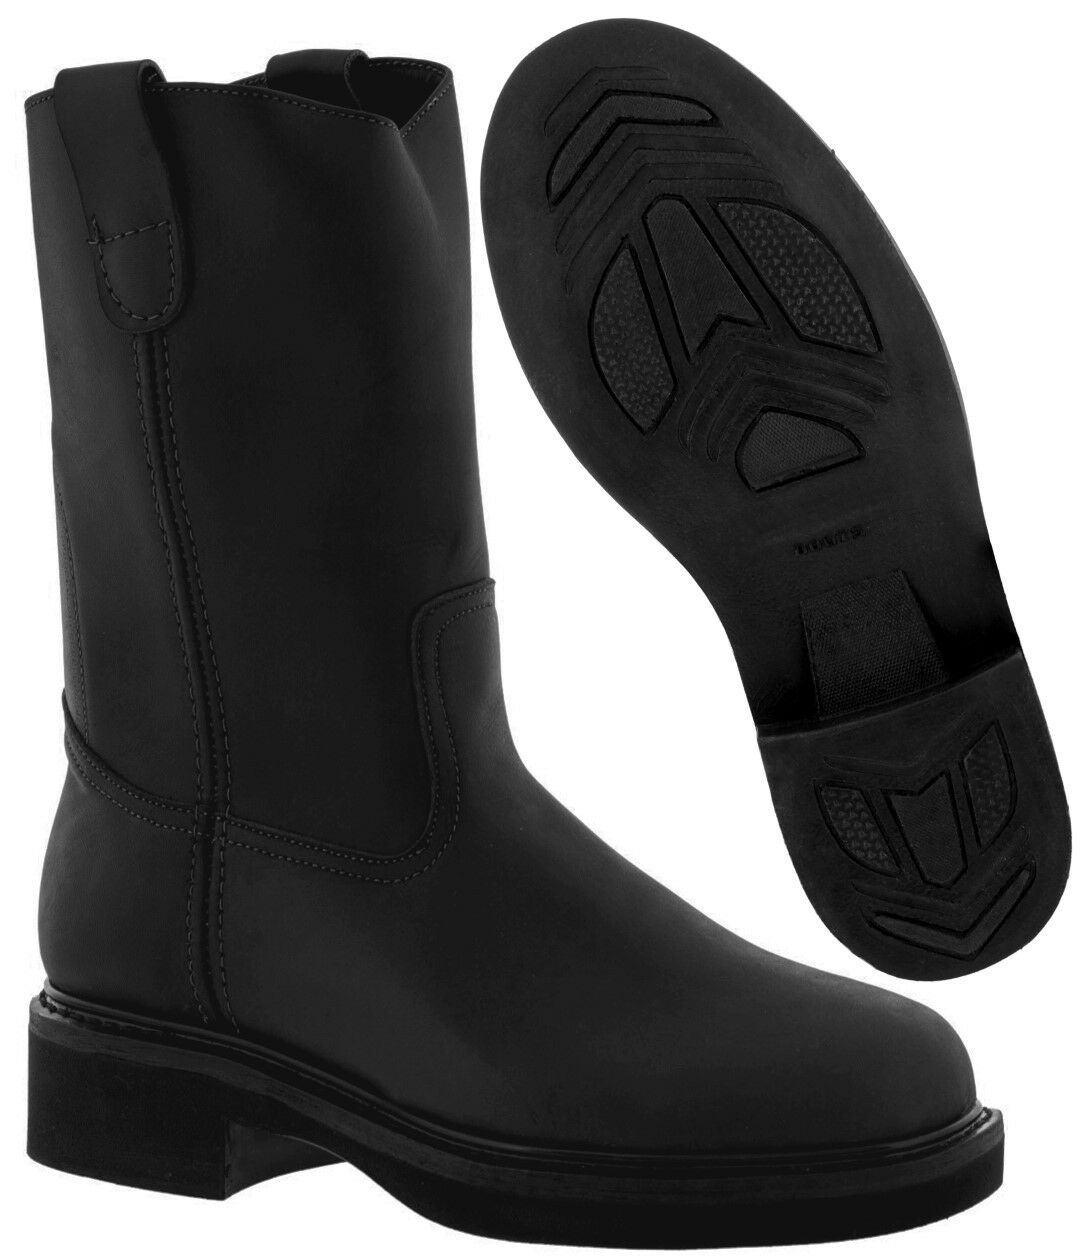 Men's Black Genuine Leather Pull On Work Boots Rubber Construction Style